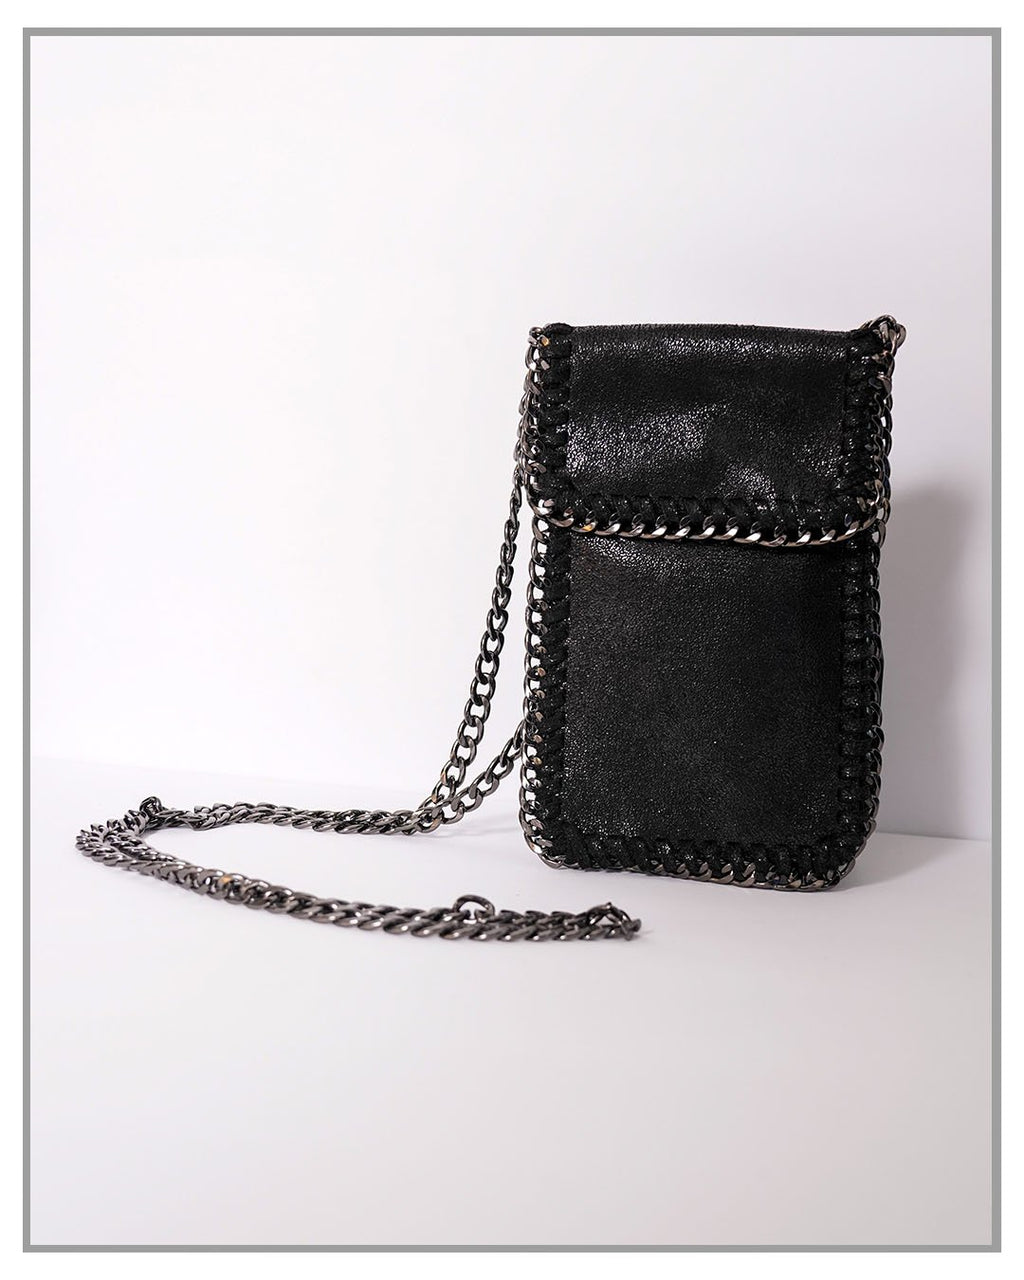 Phone Holder With Chain - truthBlack